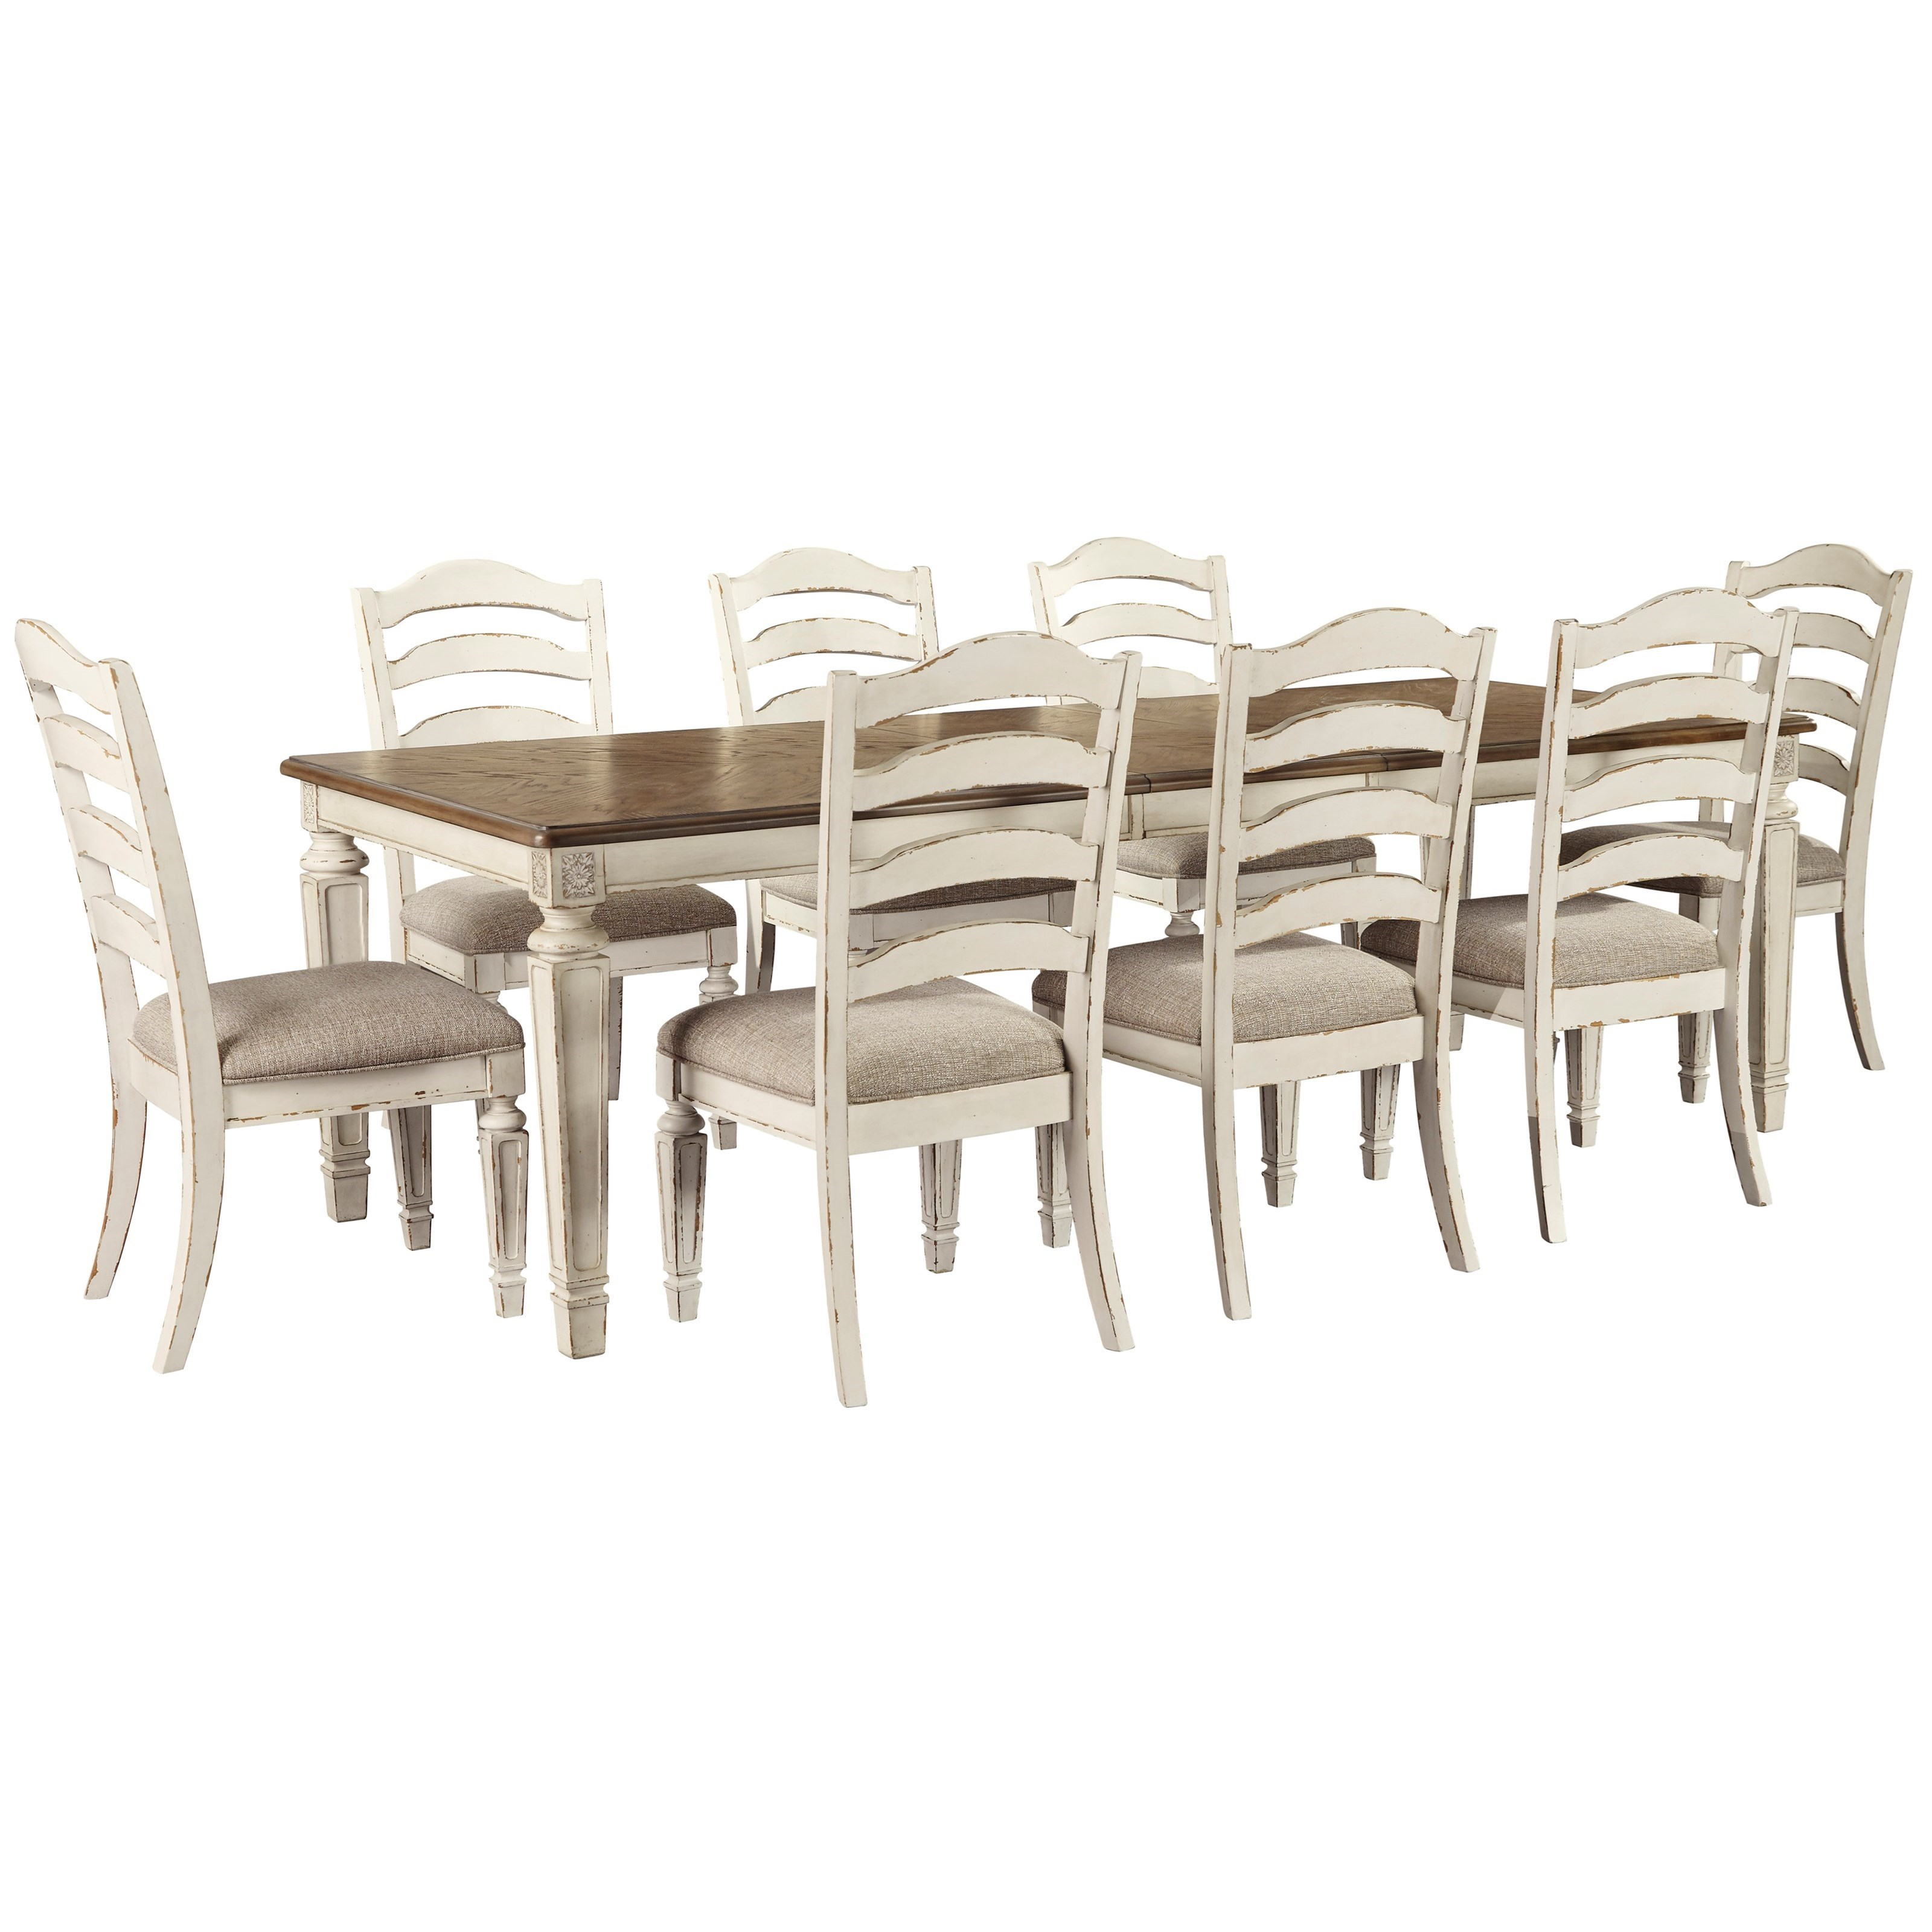 Realyn 9 Piece Rectangular Table And Chair Set Rotmans